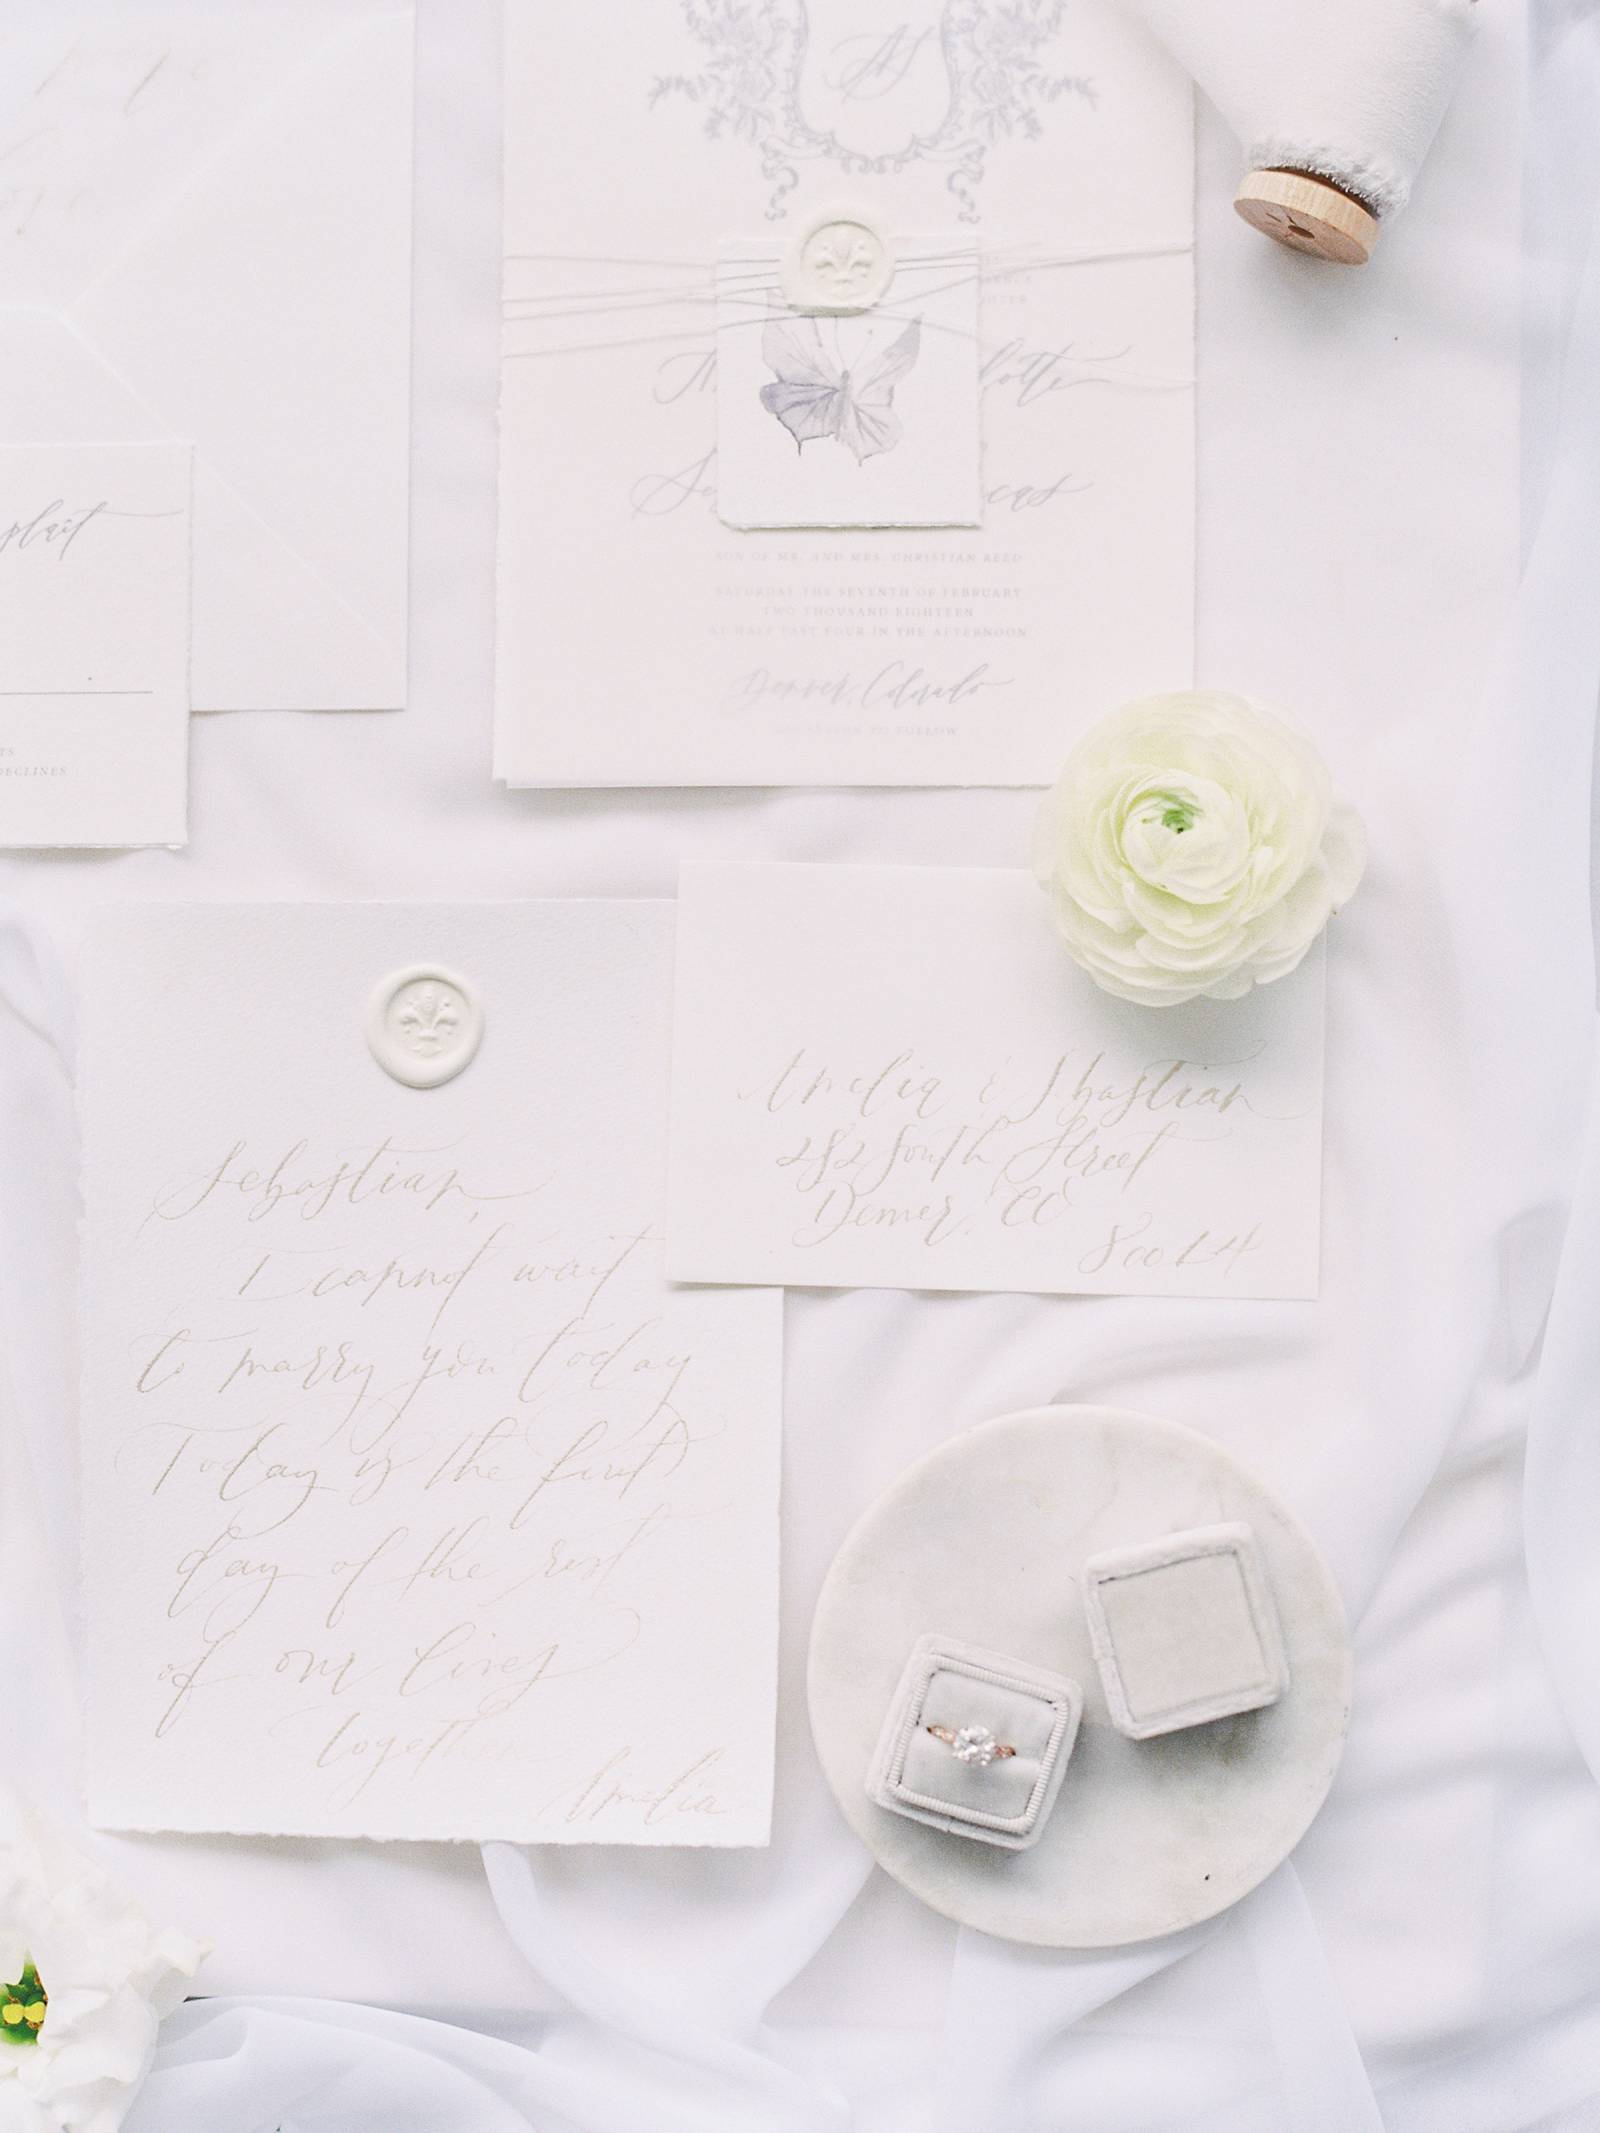 Fine Art Colorado Wedding Photography worked with Kelsey Malie Calligraphy to capture this beautiful invitation suite